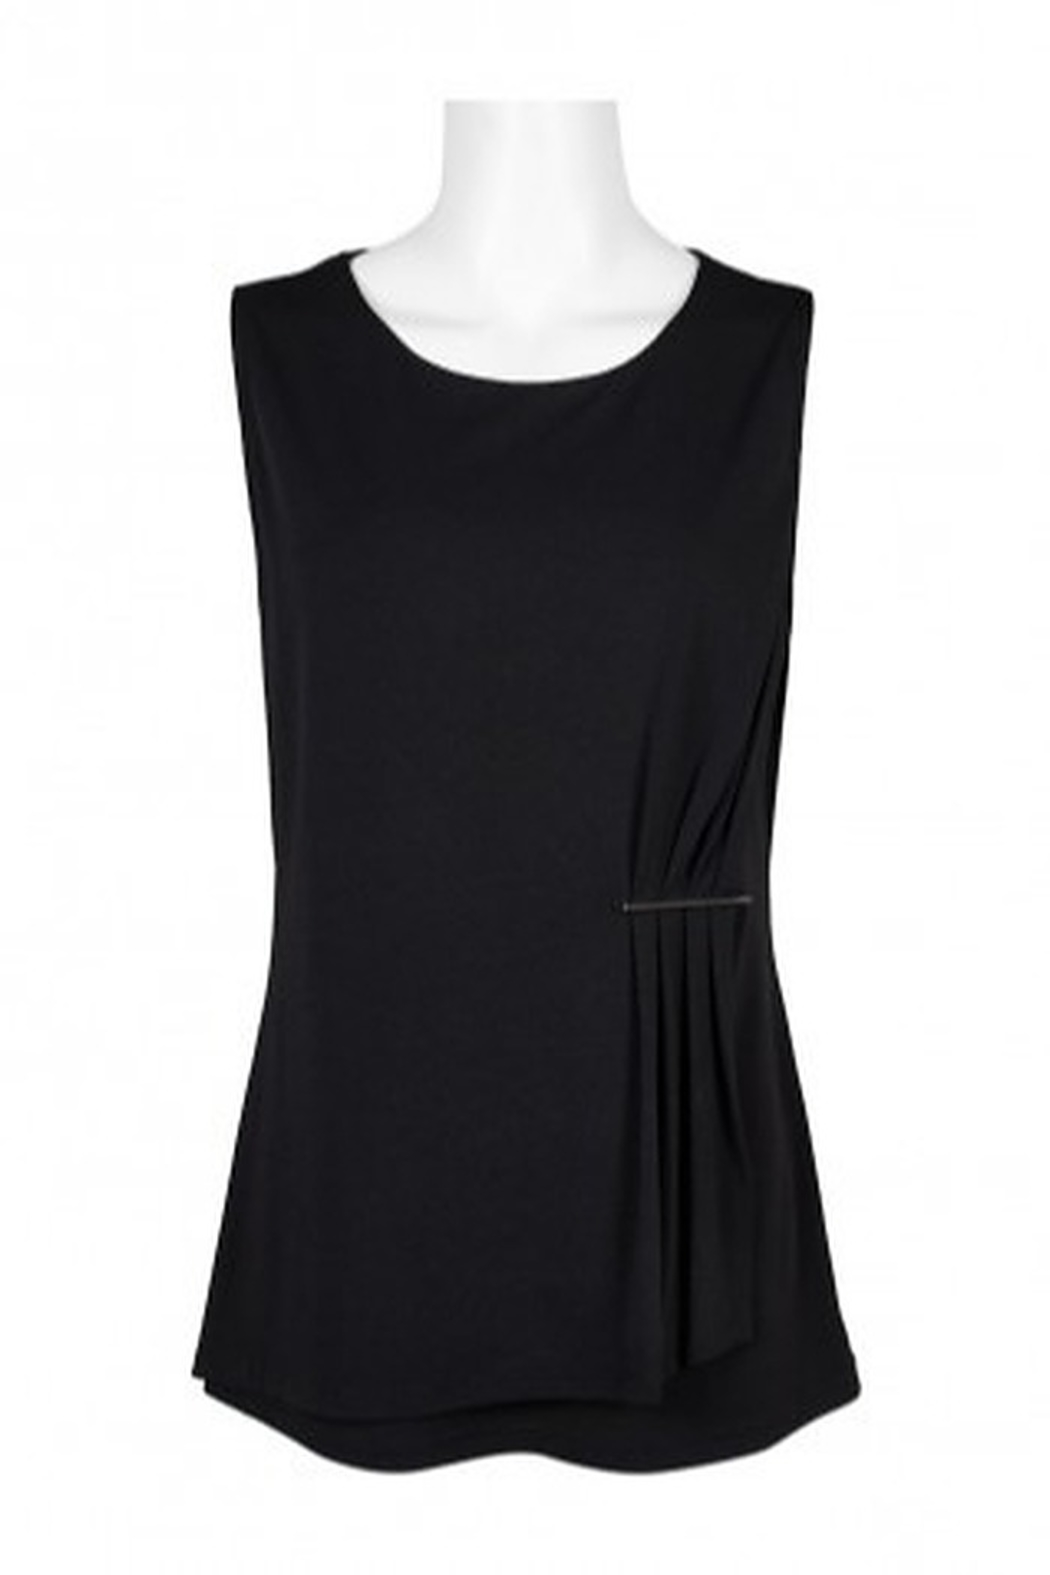 Carre Noir Scoop Neck Sleeveless Pleated Side Solid Jersey Top - Main Image